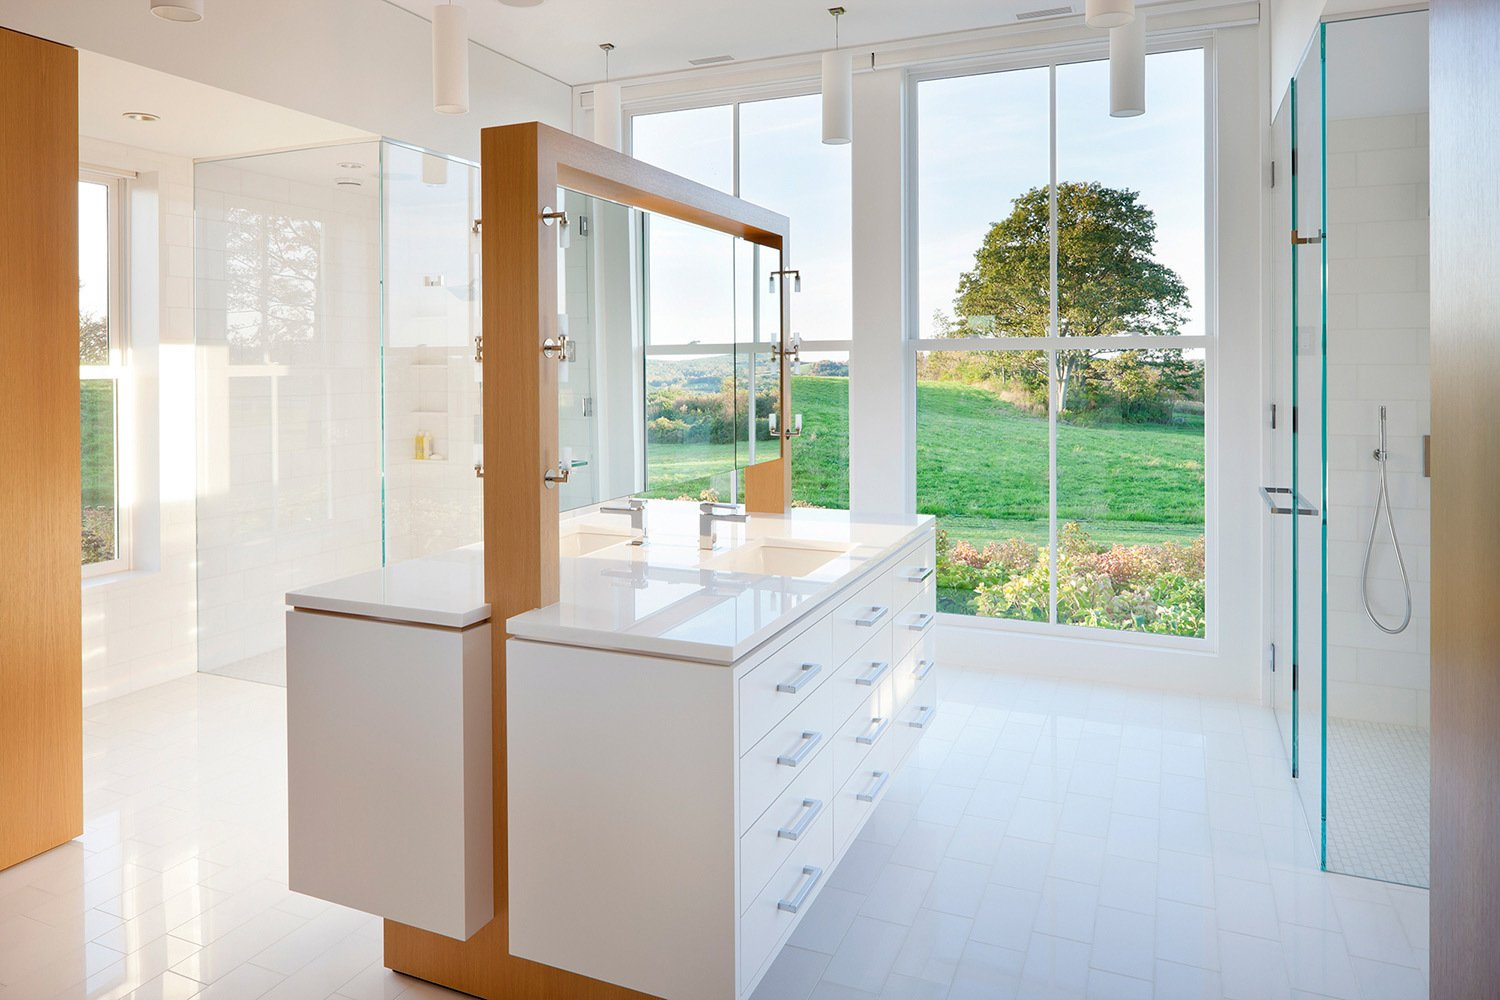 Photo 8 of 8 in Traditional Farmhouse Meets Contemporary Living